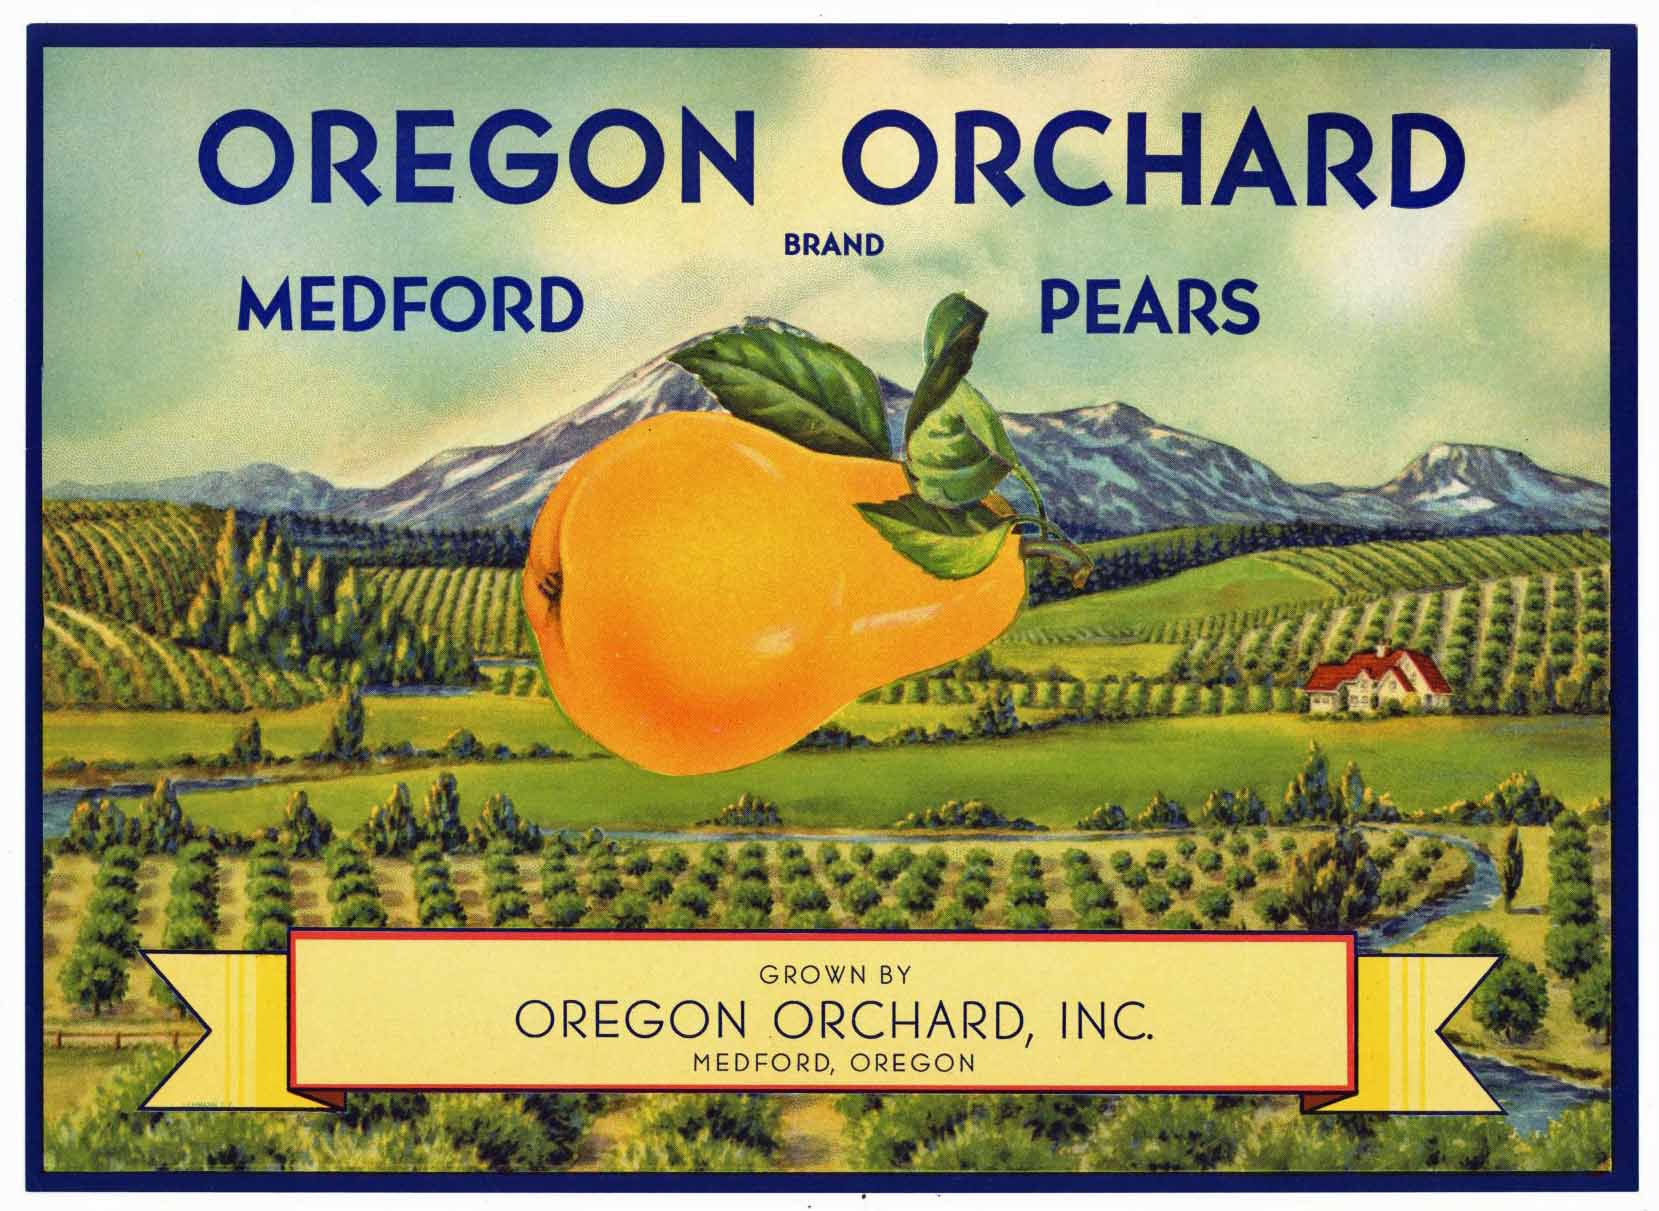 Oregon Orchard Brand Vintage Medford Oregon Pear Crate Label, s